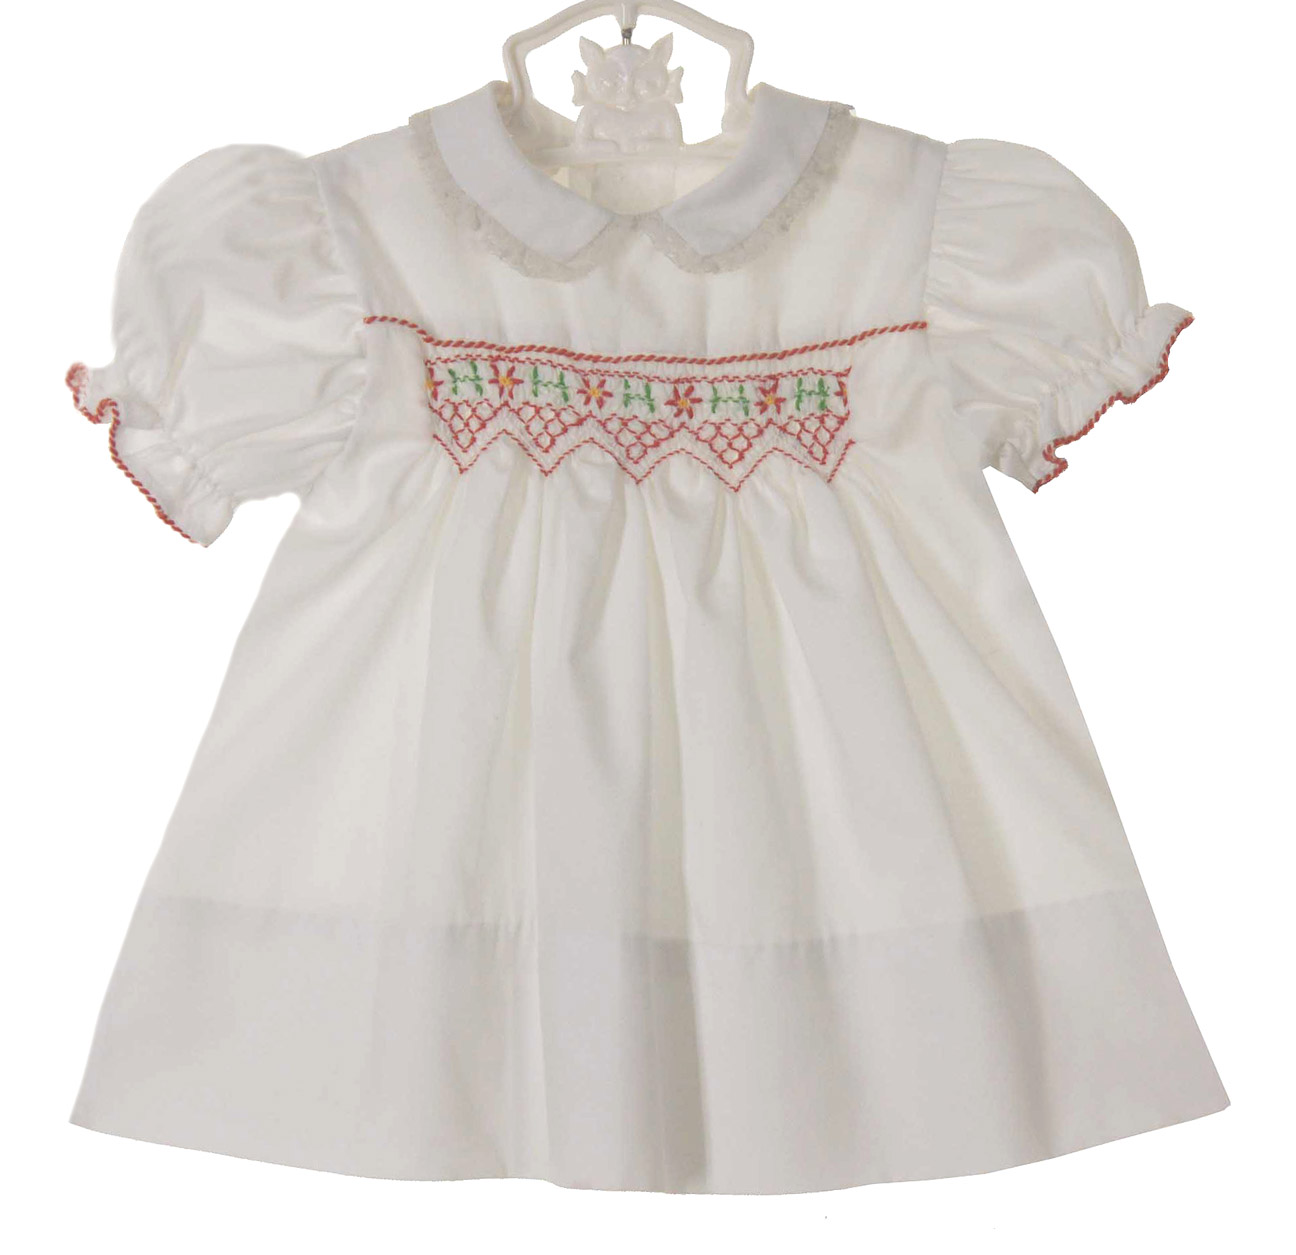 Polly Flinders white smocked baby dress with red embroidered flowers ...